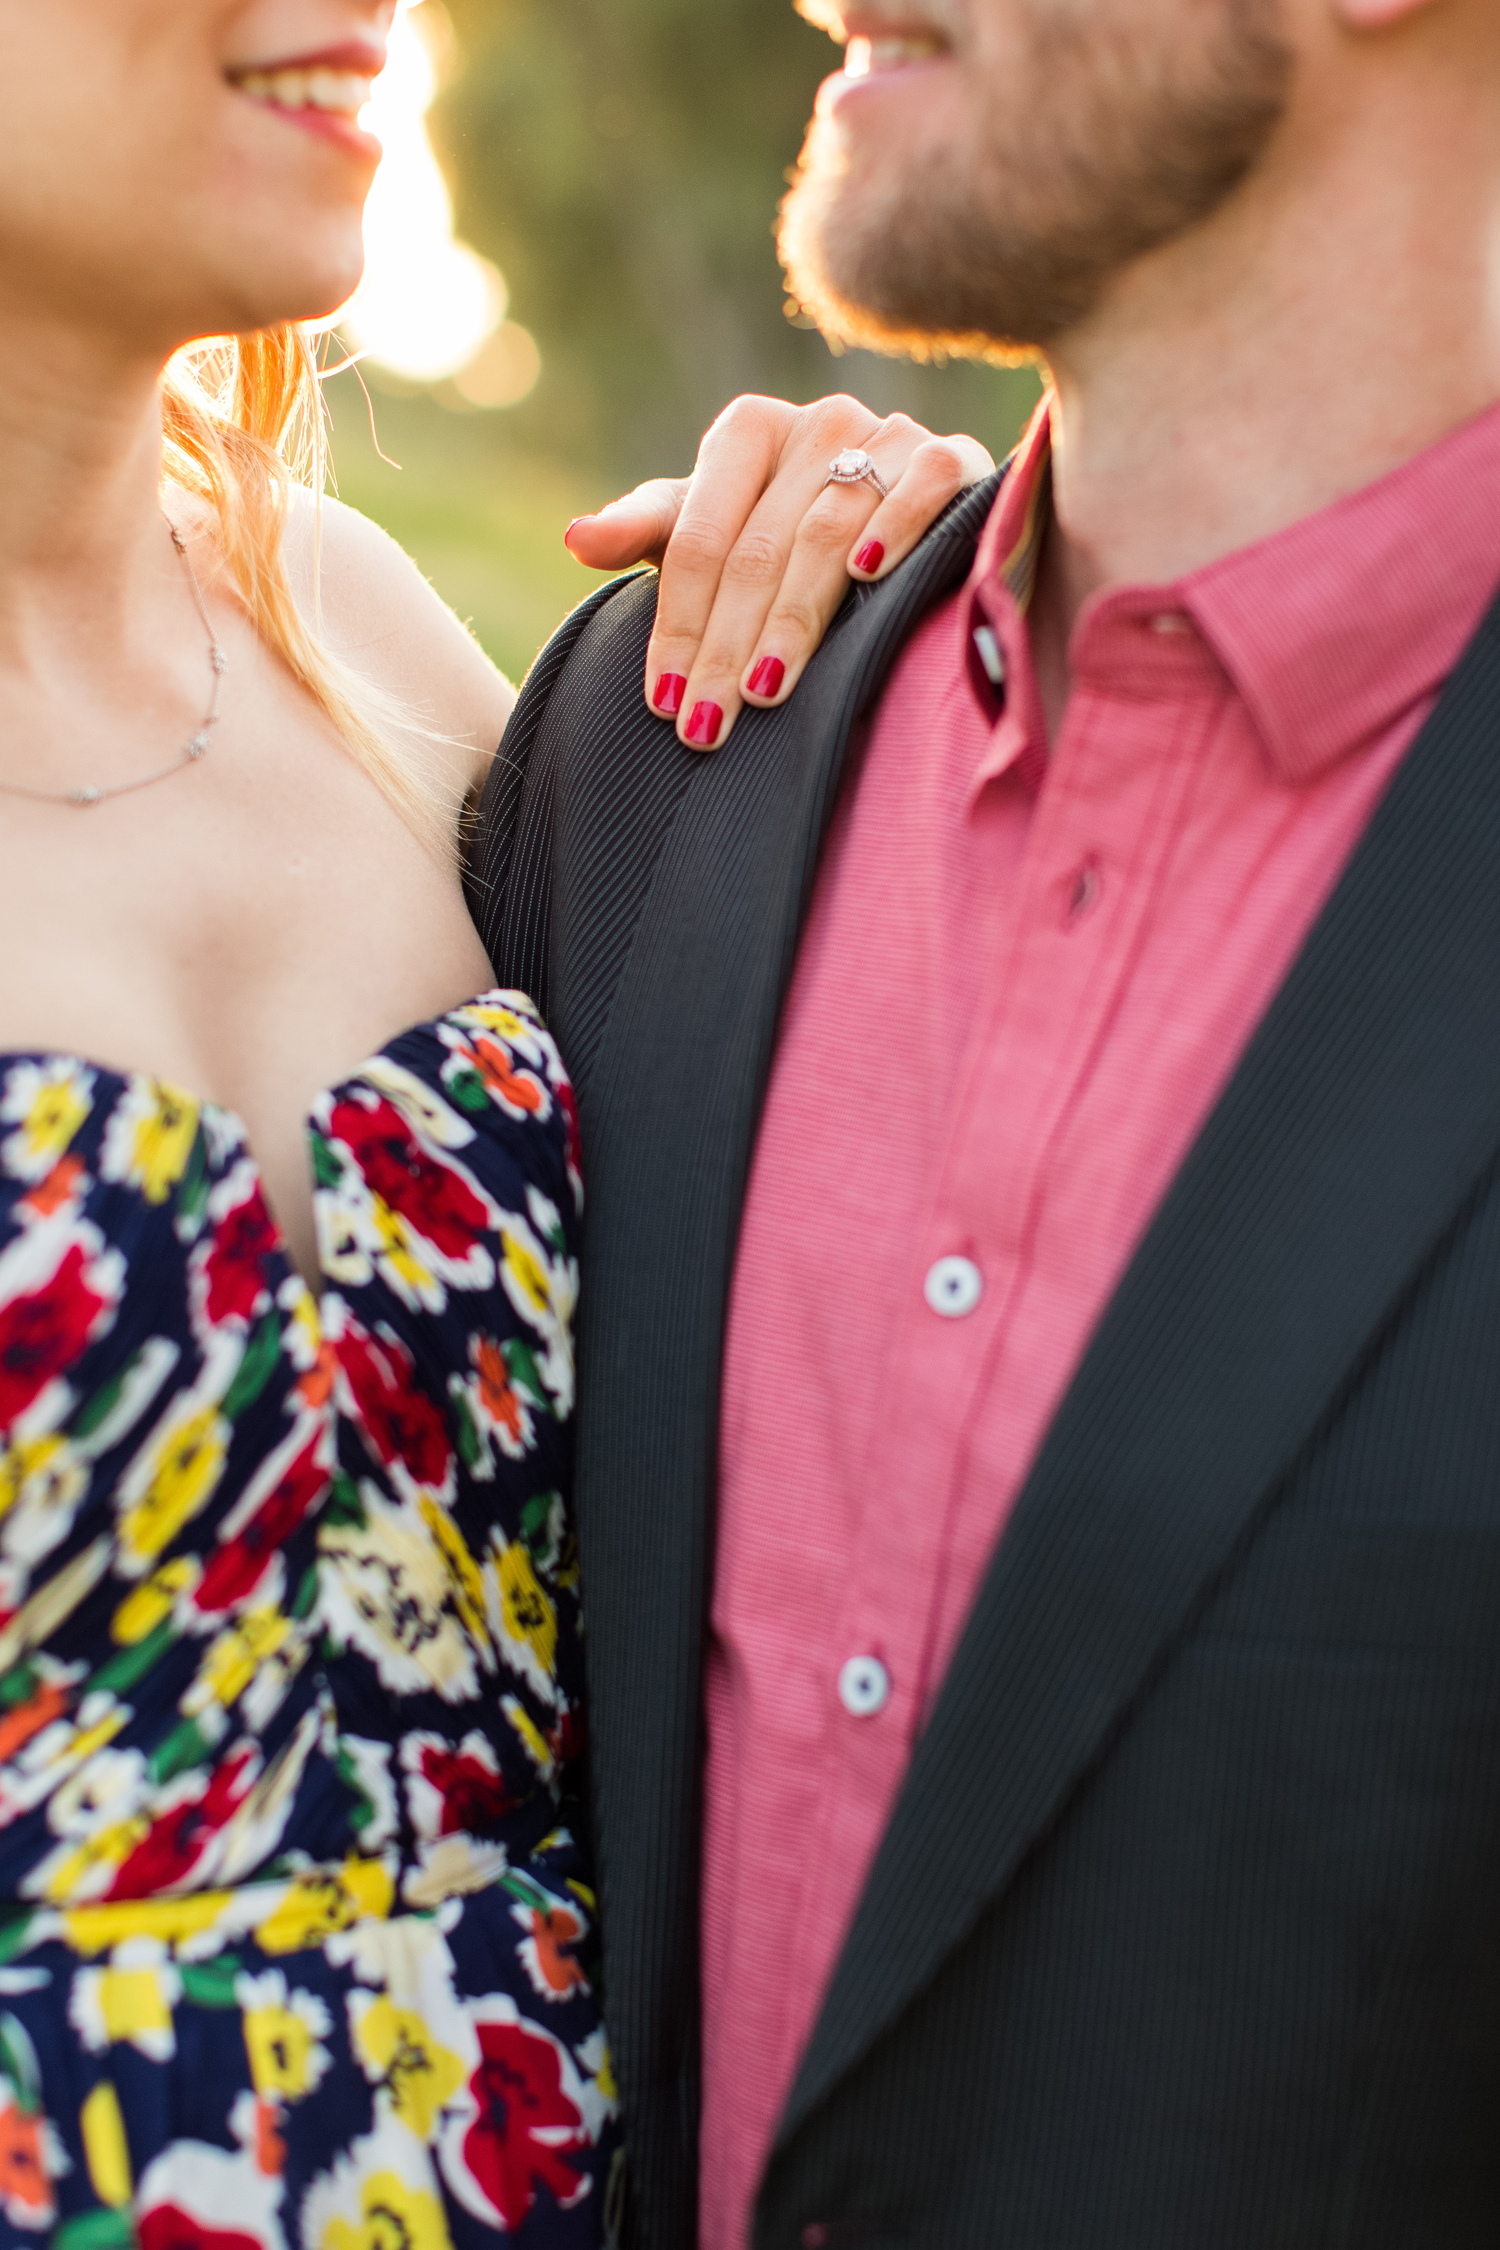 barnsdall-park-engagement-photography006.jpg